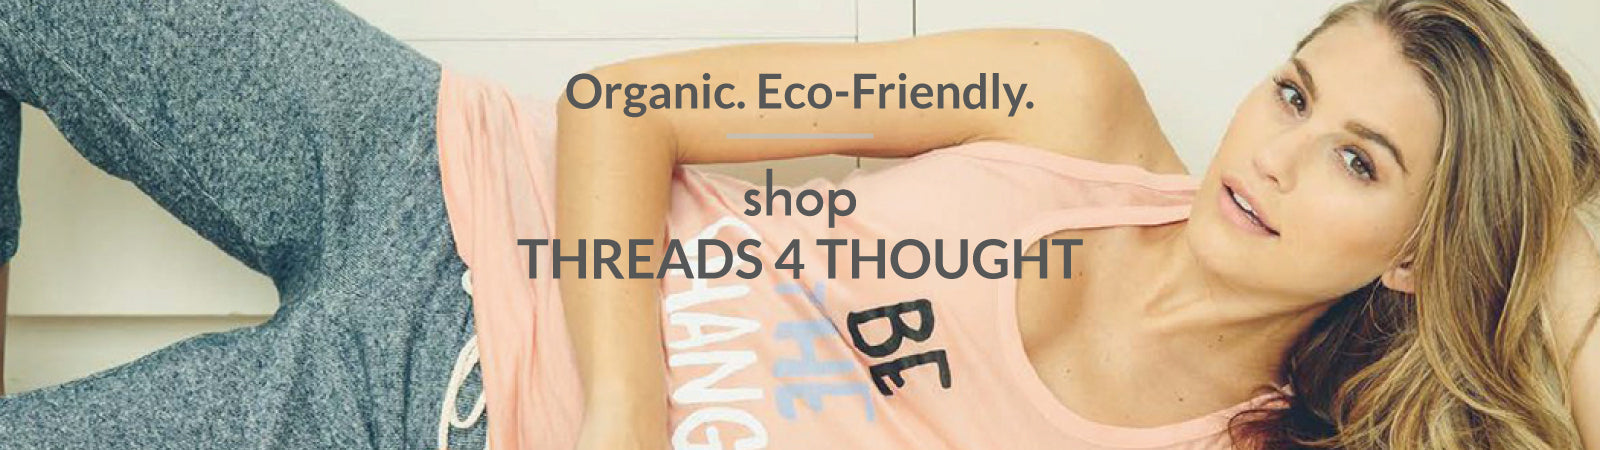 Shop men's and women's sustainable apparel from Threads 4 Thought.